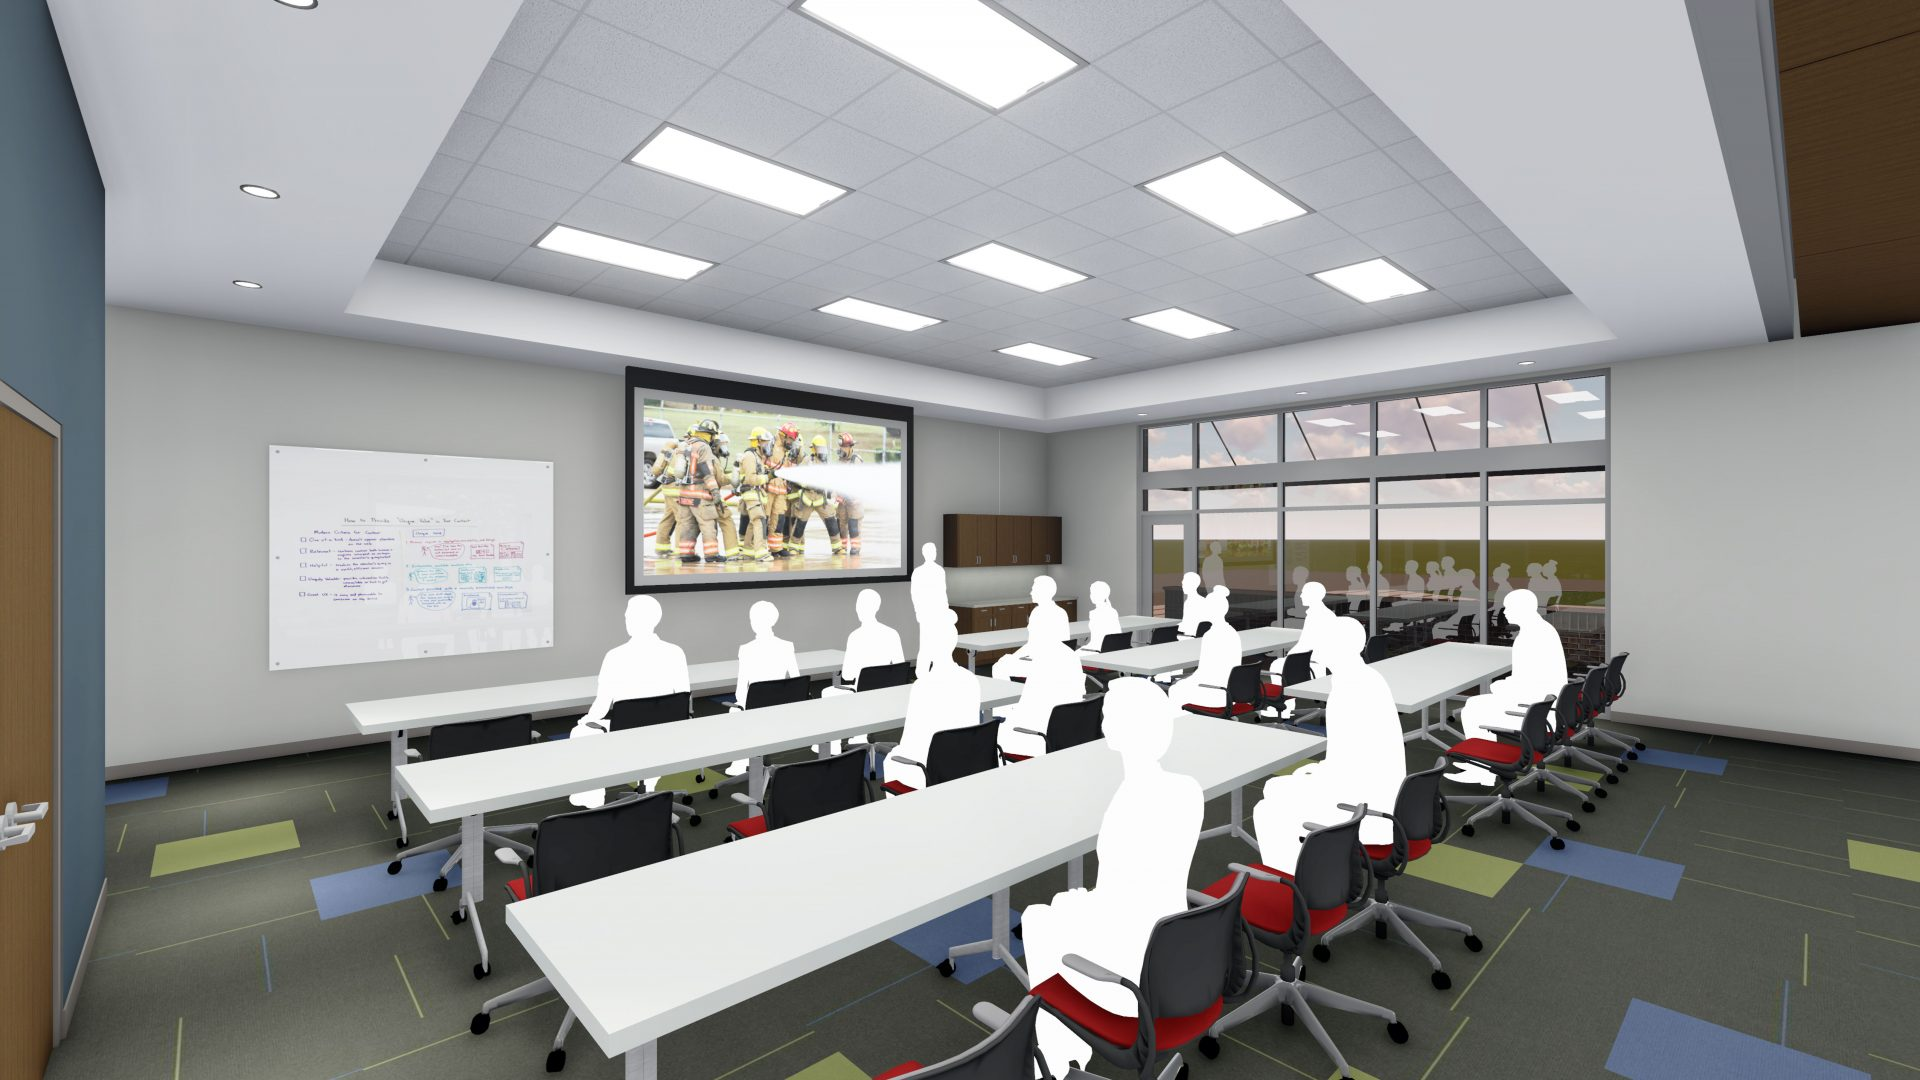 Rendering of a training room